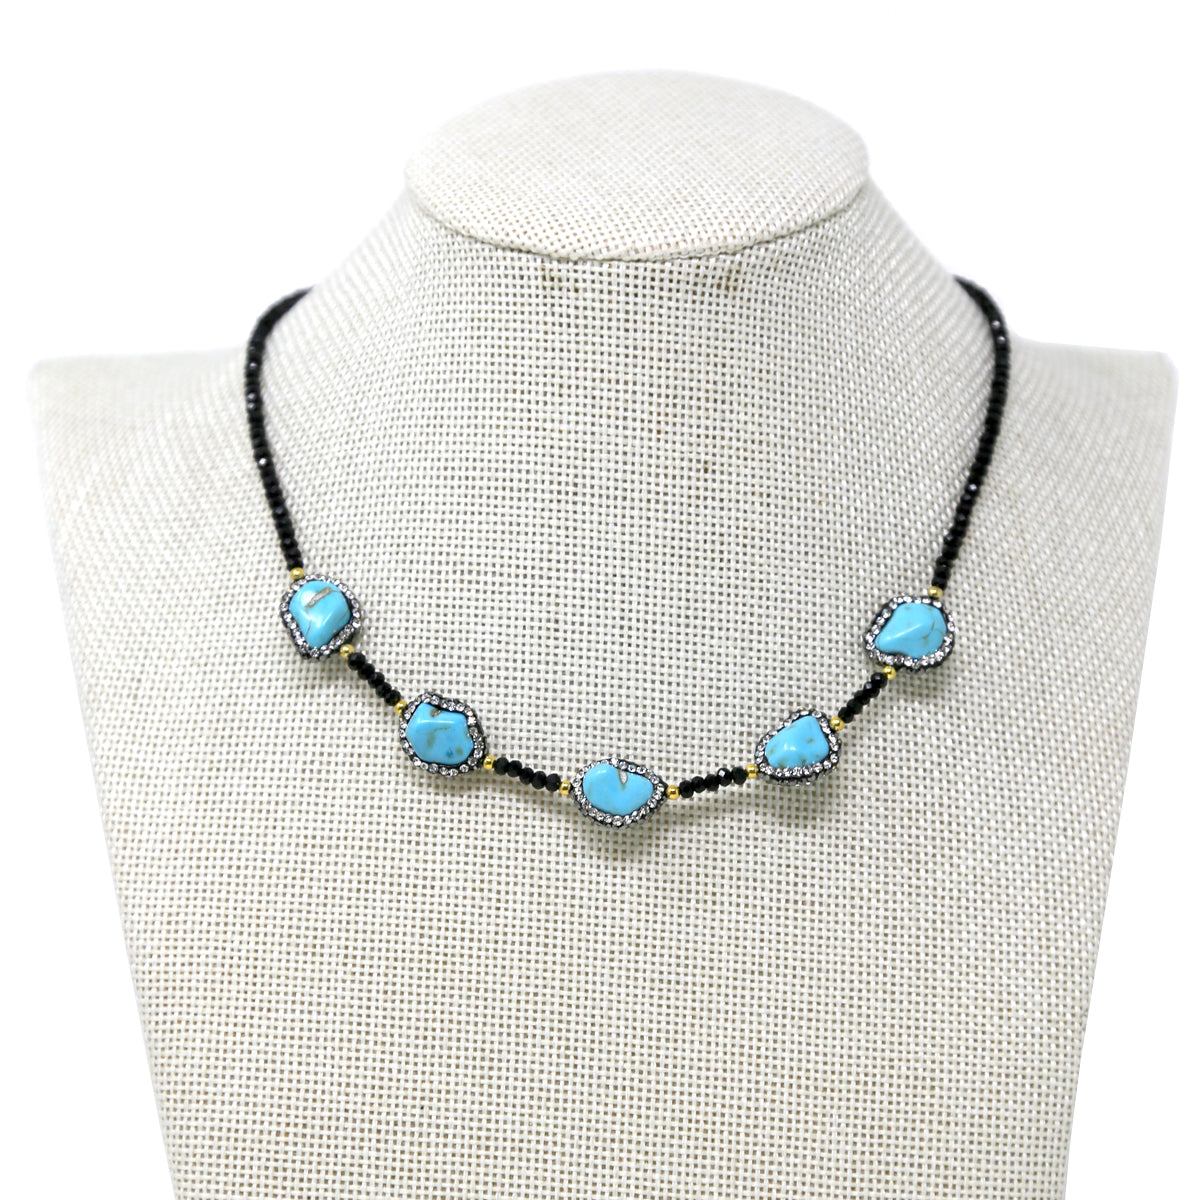 Glass Beads and Pebble Shell Collar Necklace